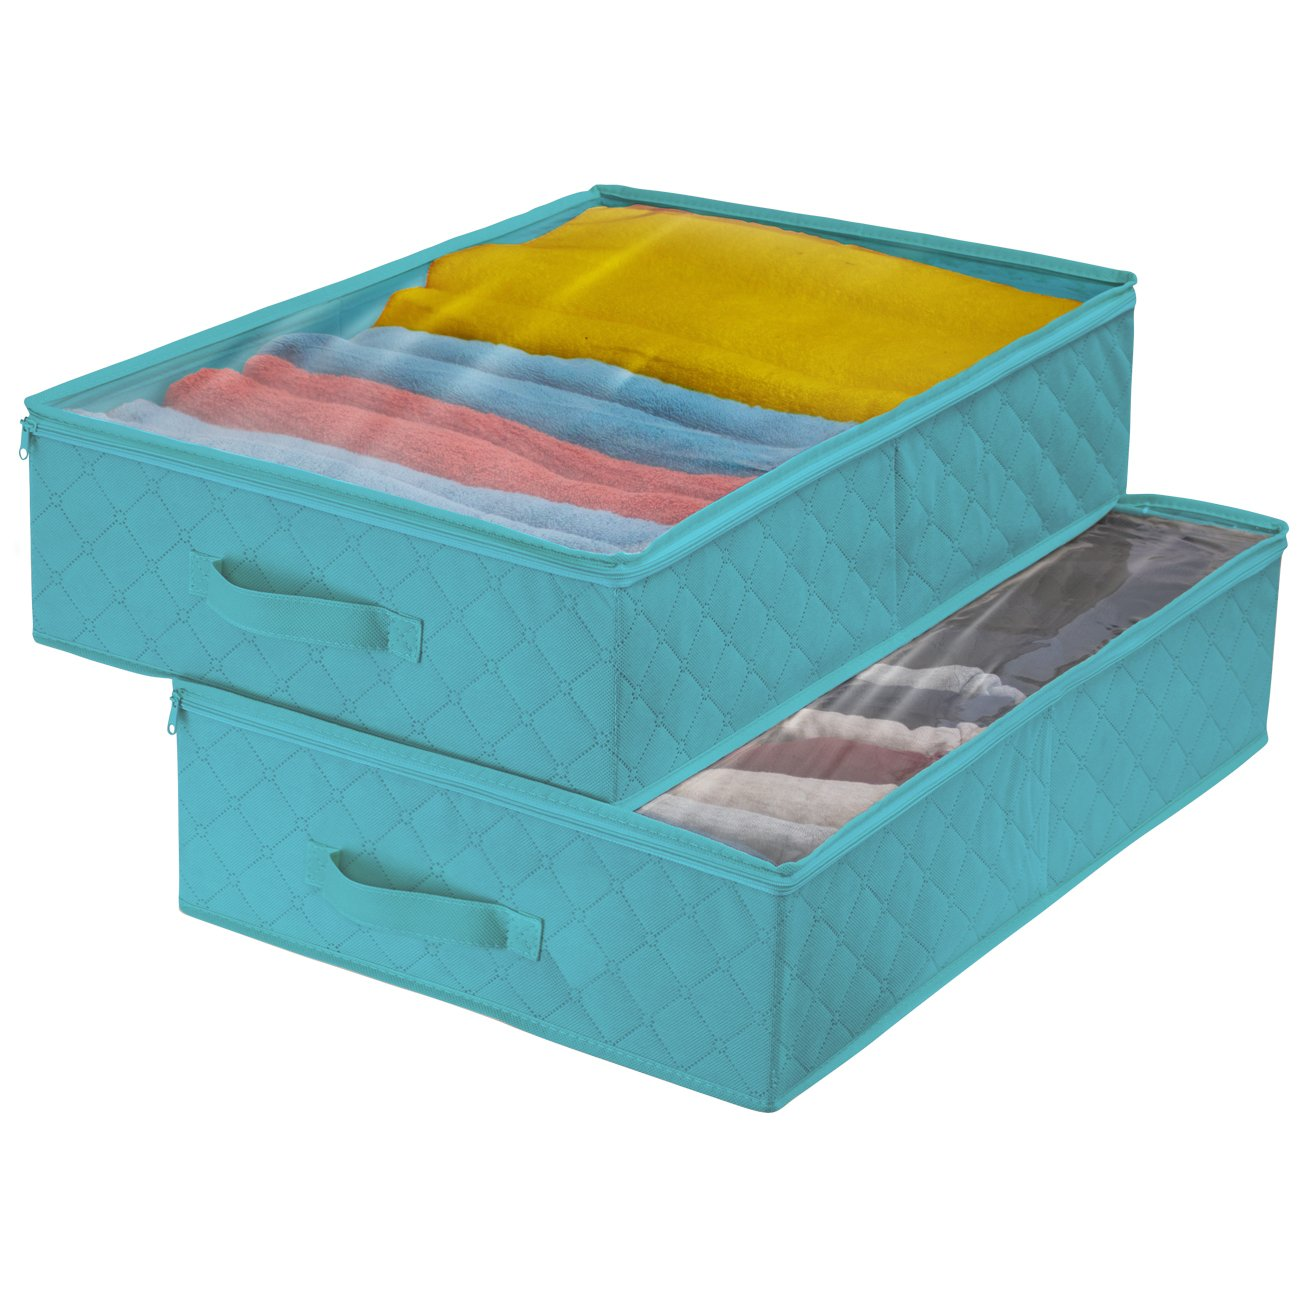 Sorbus Storage Bags Closet & Underbed Organizer Set, Clear Cover, Foldable with Carry Handles, Great for, Clothes, Linens, Bedding, Closets, Bedrooms, and more (2 Pack - One Compartment, Aqua)